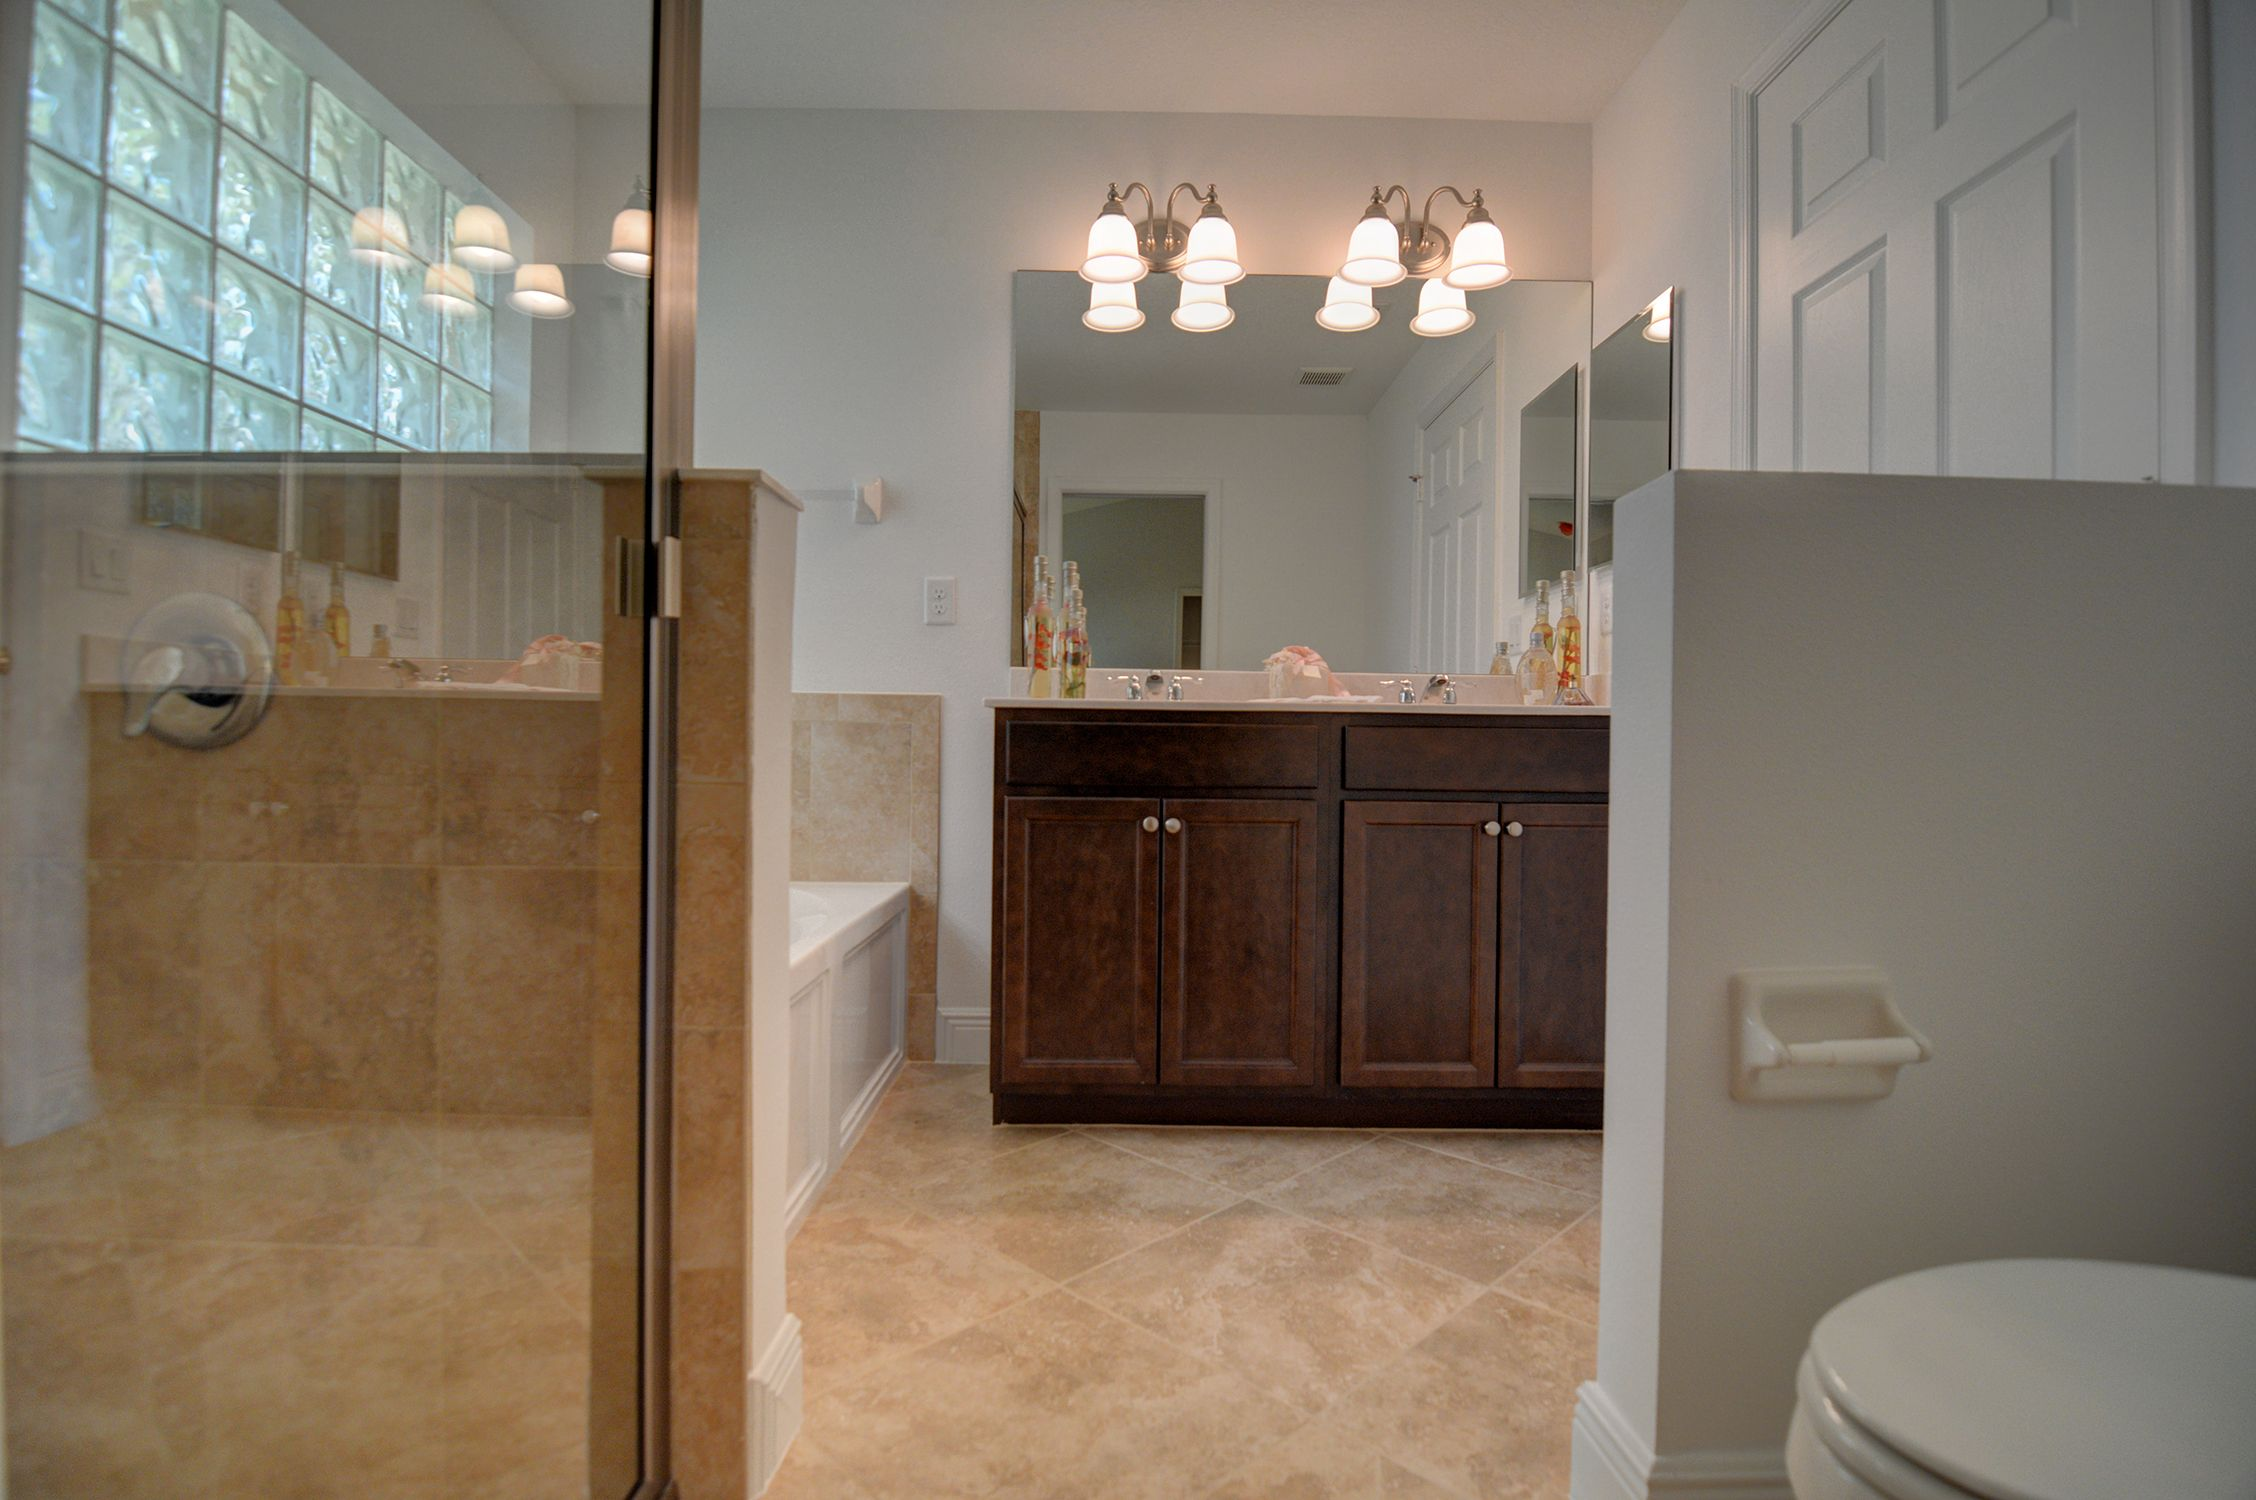 Bathroom featured in the Cayman 1763 By Renar Homes in Martin-St. Lucie-Okeechobee Counties, FL